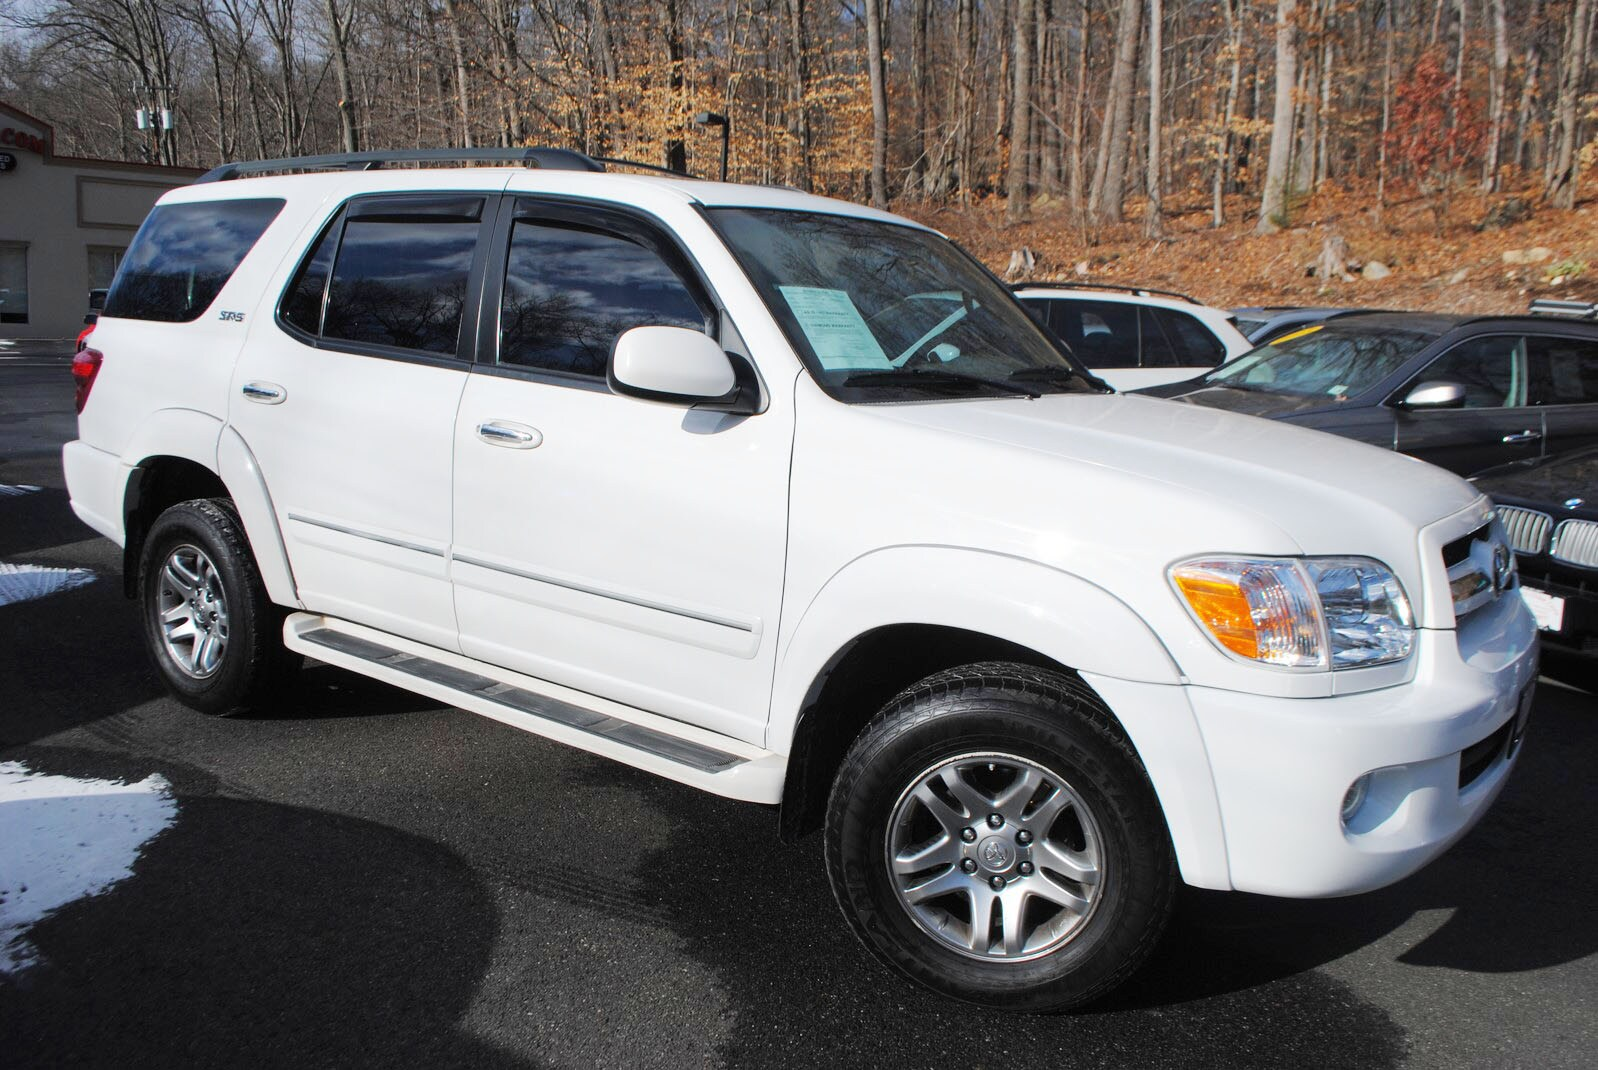 used 2006 toyota sequoia for sale west milford nj. Black Bedroom Furniture Sets. Home Design Ideas